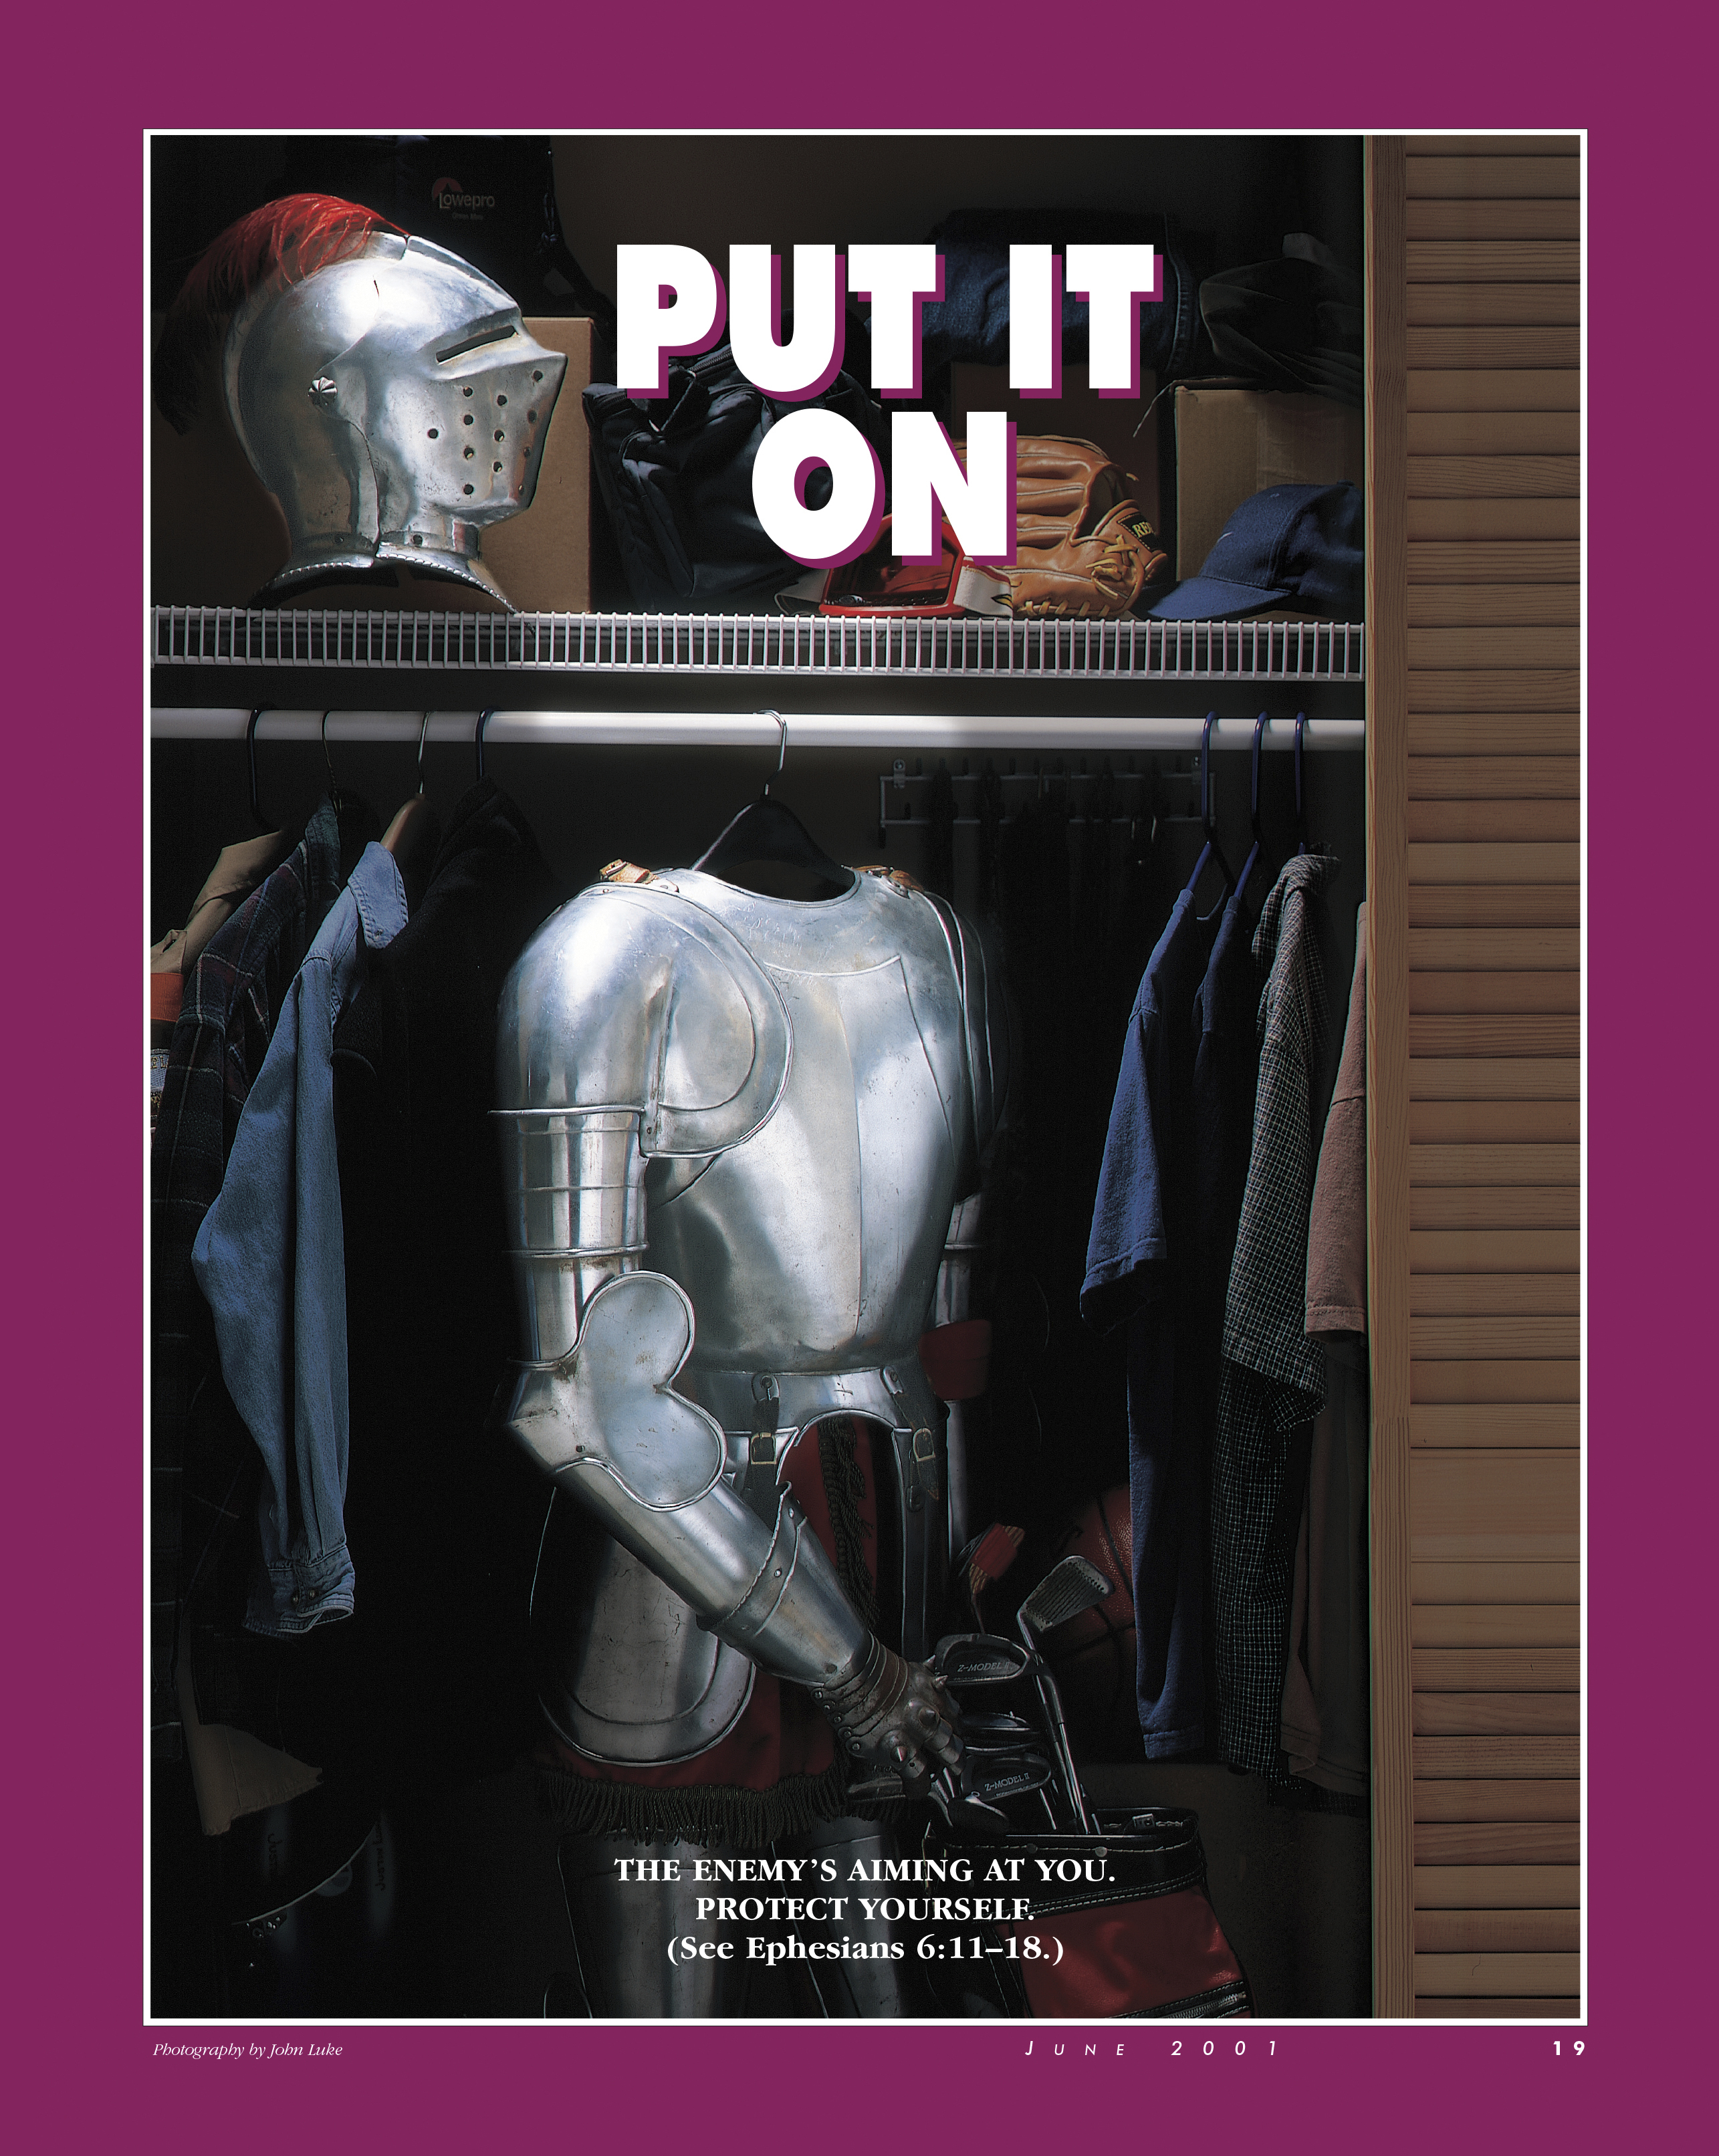 Put It On. The enemy's aiming at you. Protect yourself. (See Ephesians 6:11–18.) June 2001 © undefined ipCode 1.